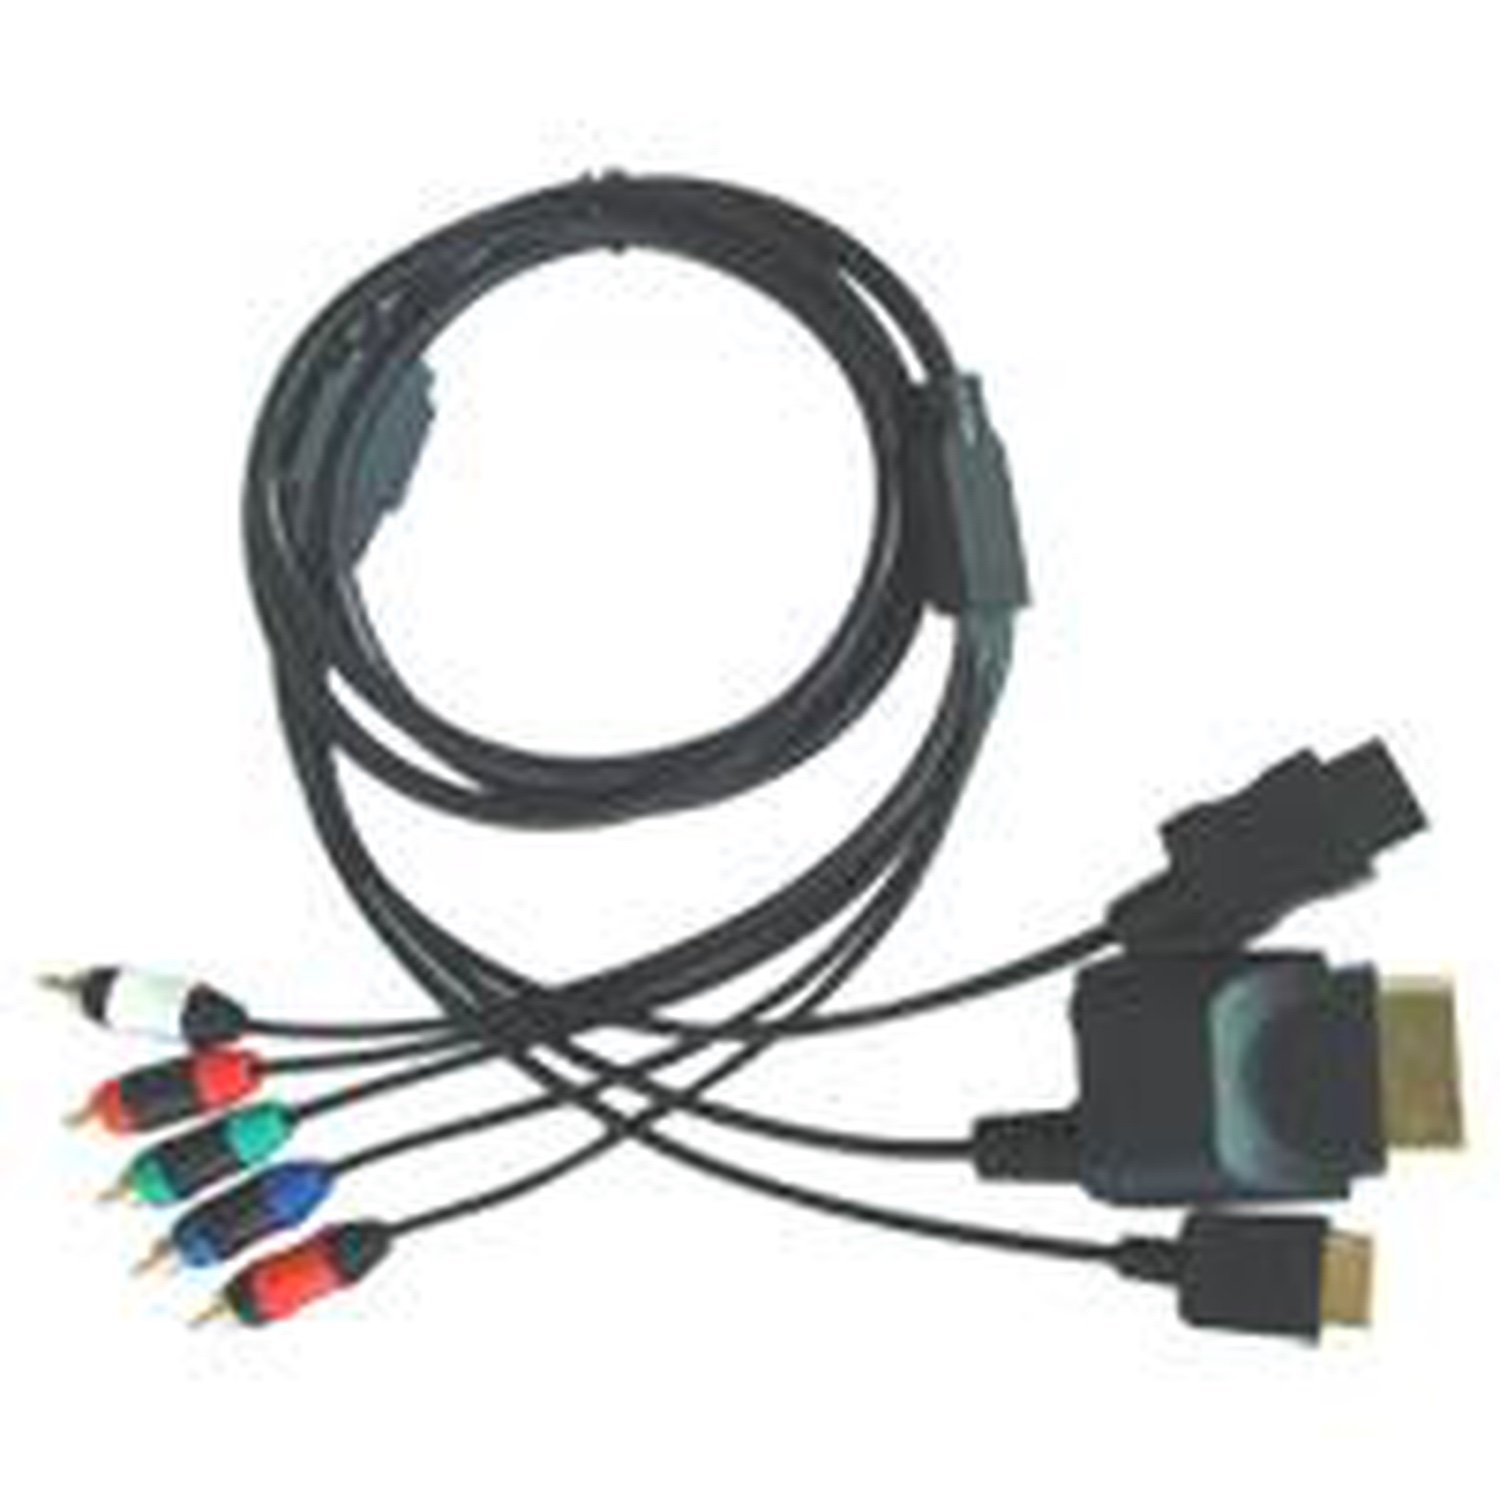 цена на 4 in 1 Component Cord (PS2/PS3/Wii/XBOX360)